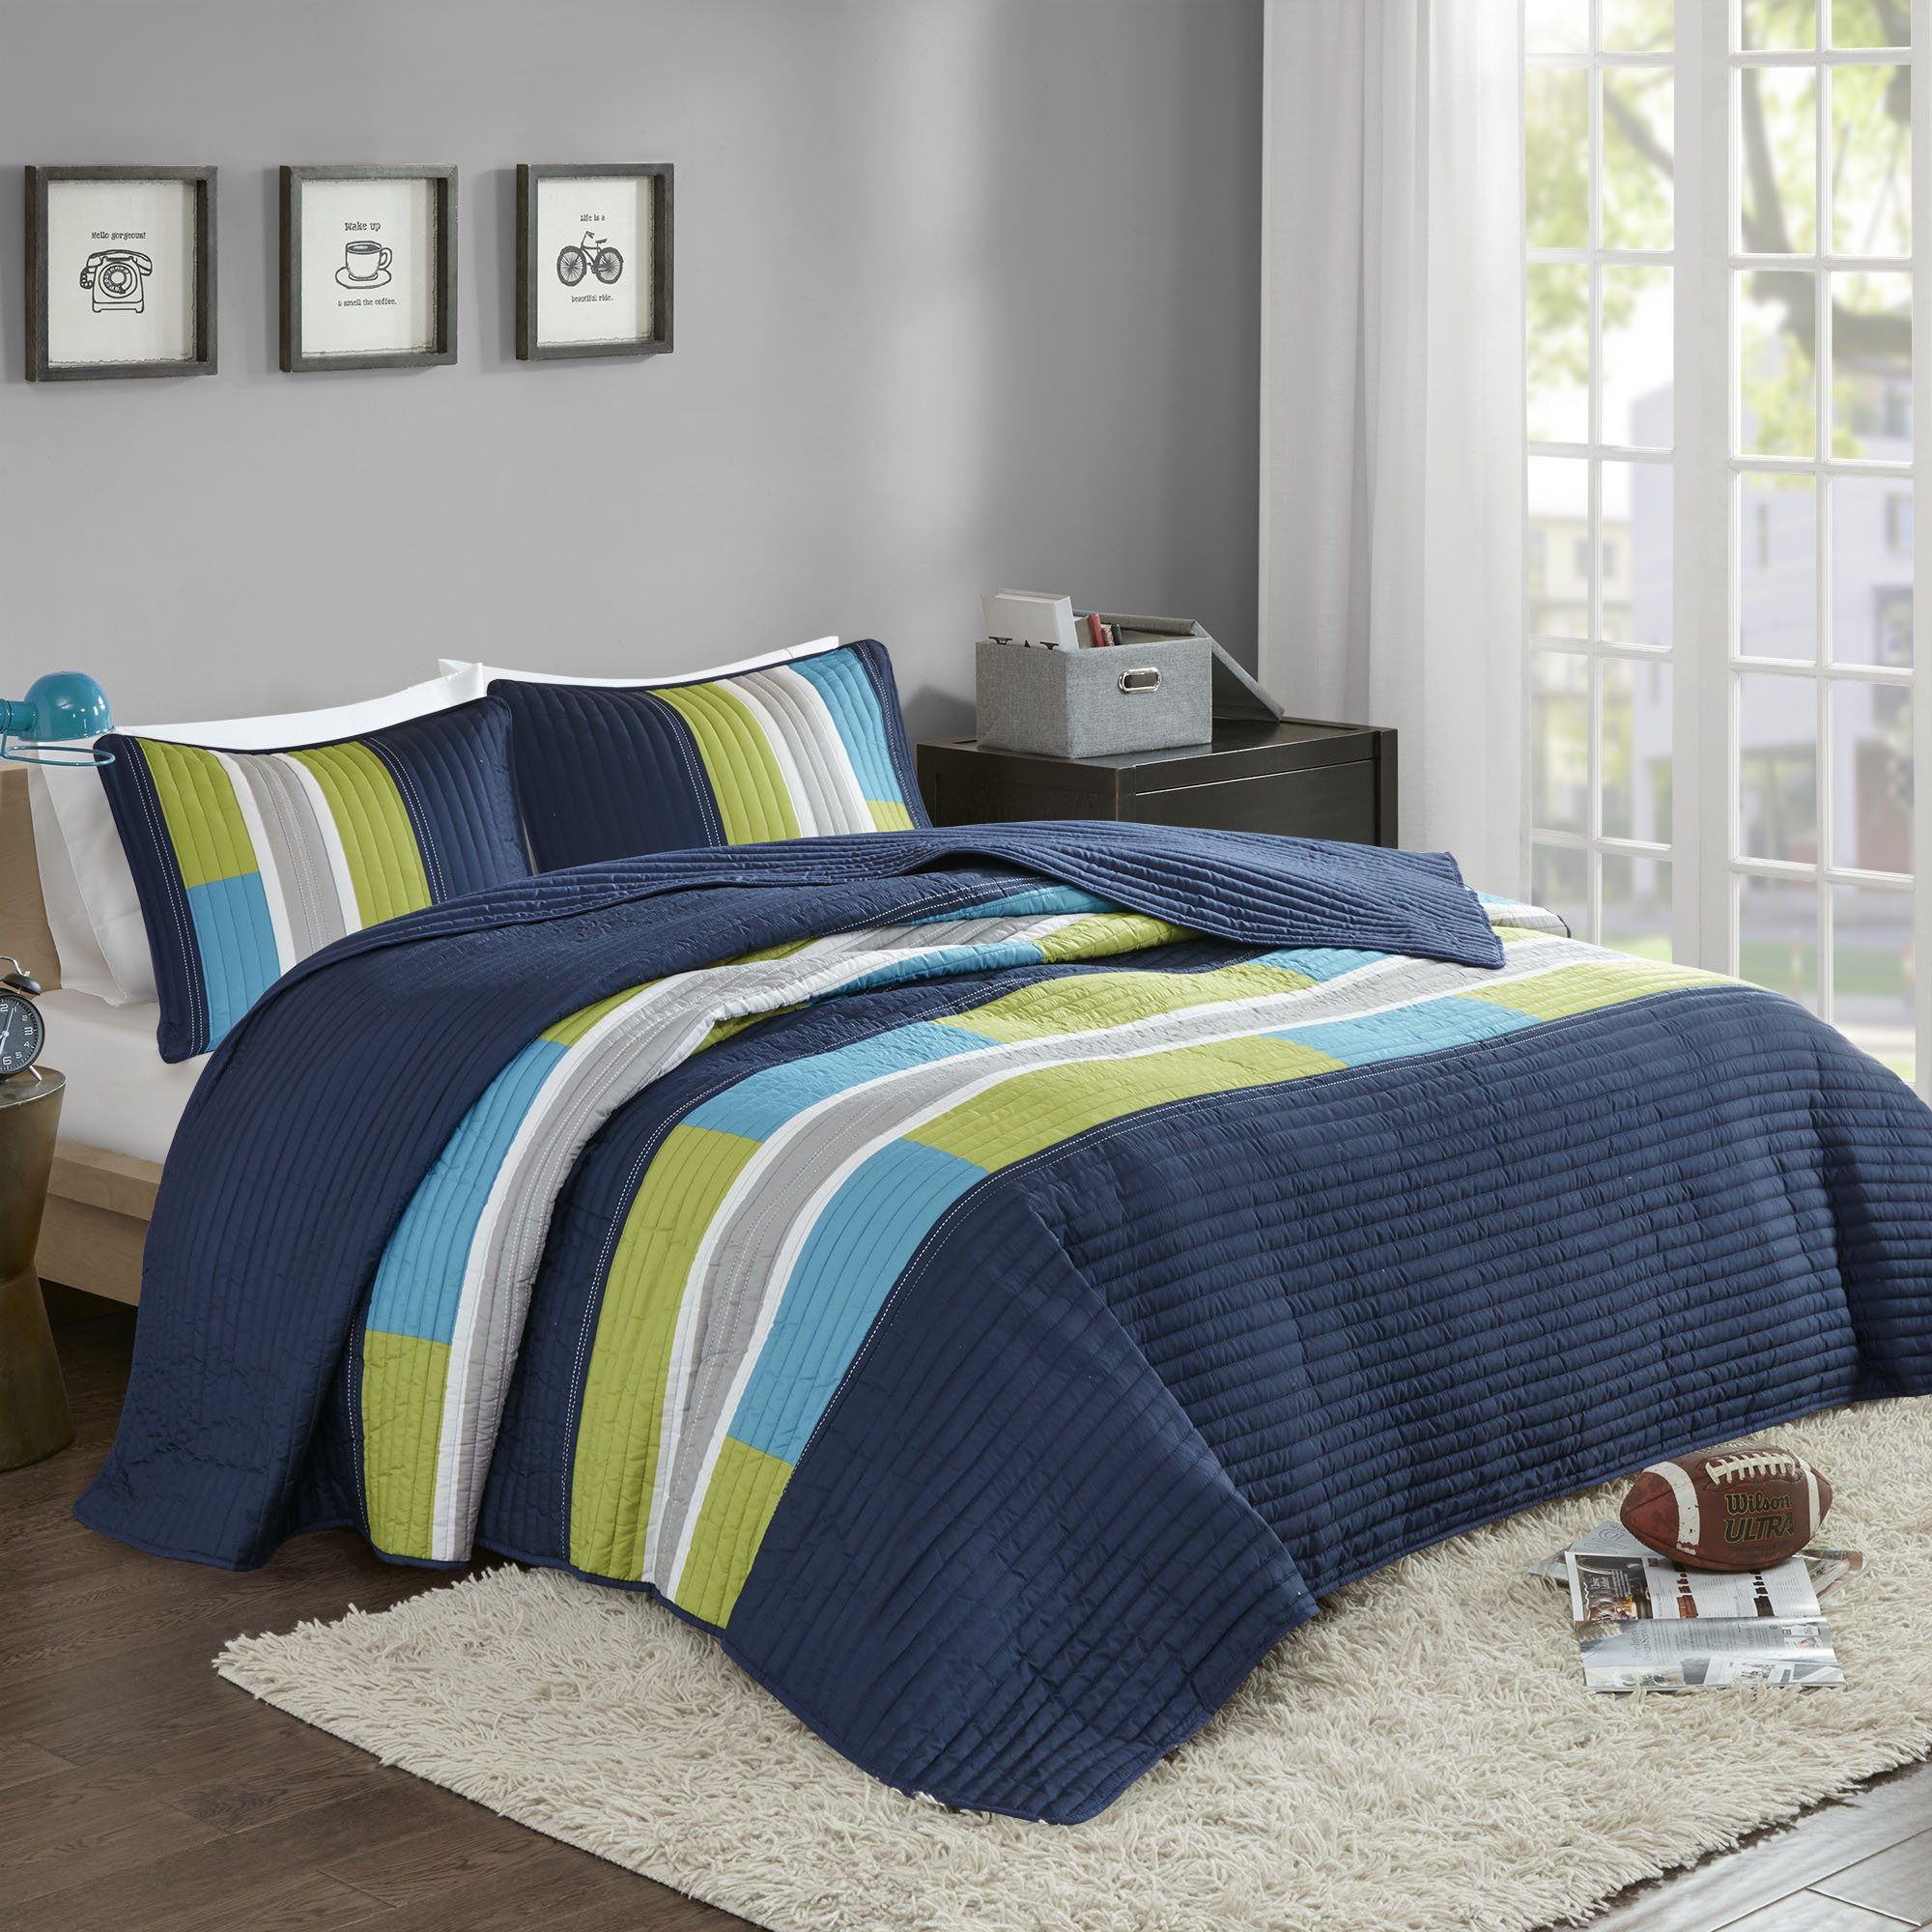 Bedspreads Queen Size Mini Quilt Set - Casual Pierre 3 Piece Kids Lightweight Filling Bedding Cover - Blue / Navy Patchwork Print - All Season Hypoallergenic - Fits Full/Queen - Comfort Spaces